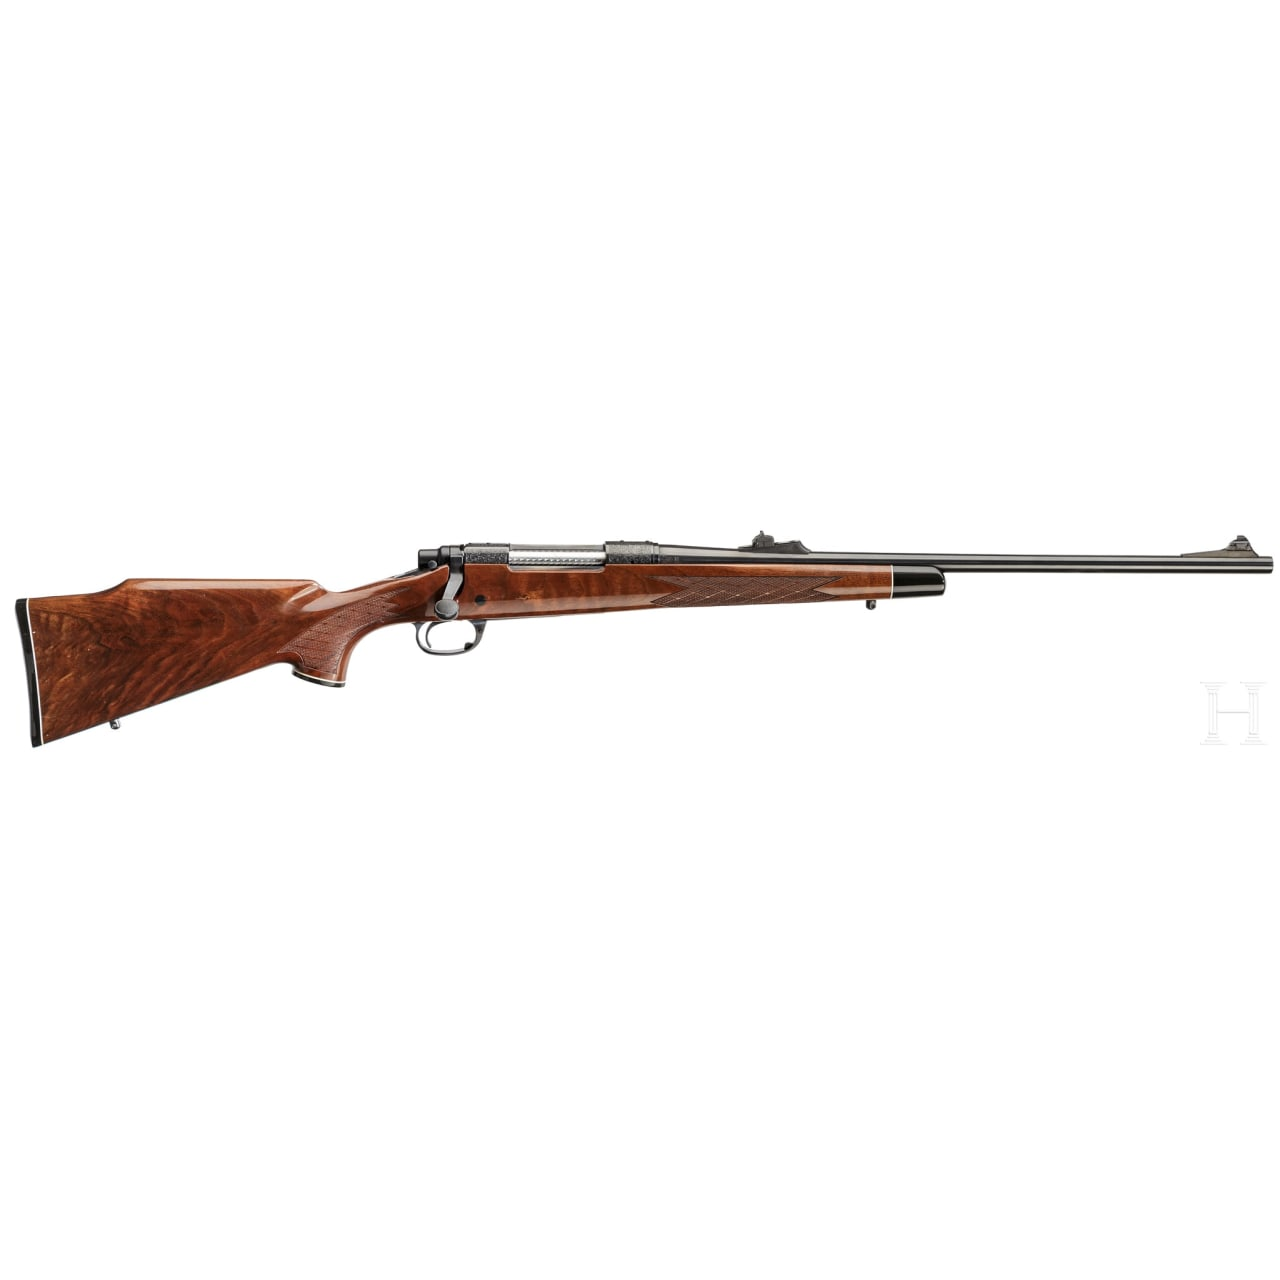 Remington Mod. 700, No 1 of a 3-piece collector's set w/matching numbers, 180th year anniversary limited edition